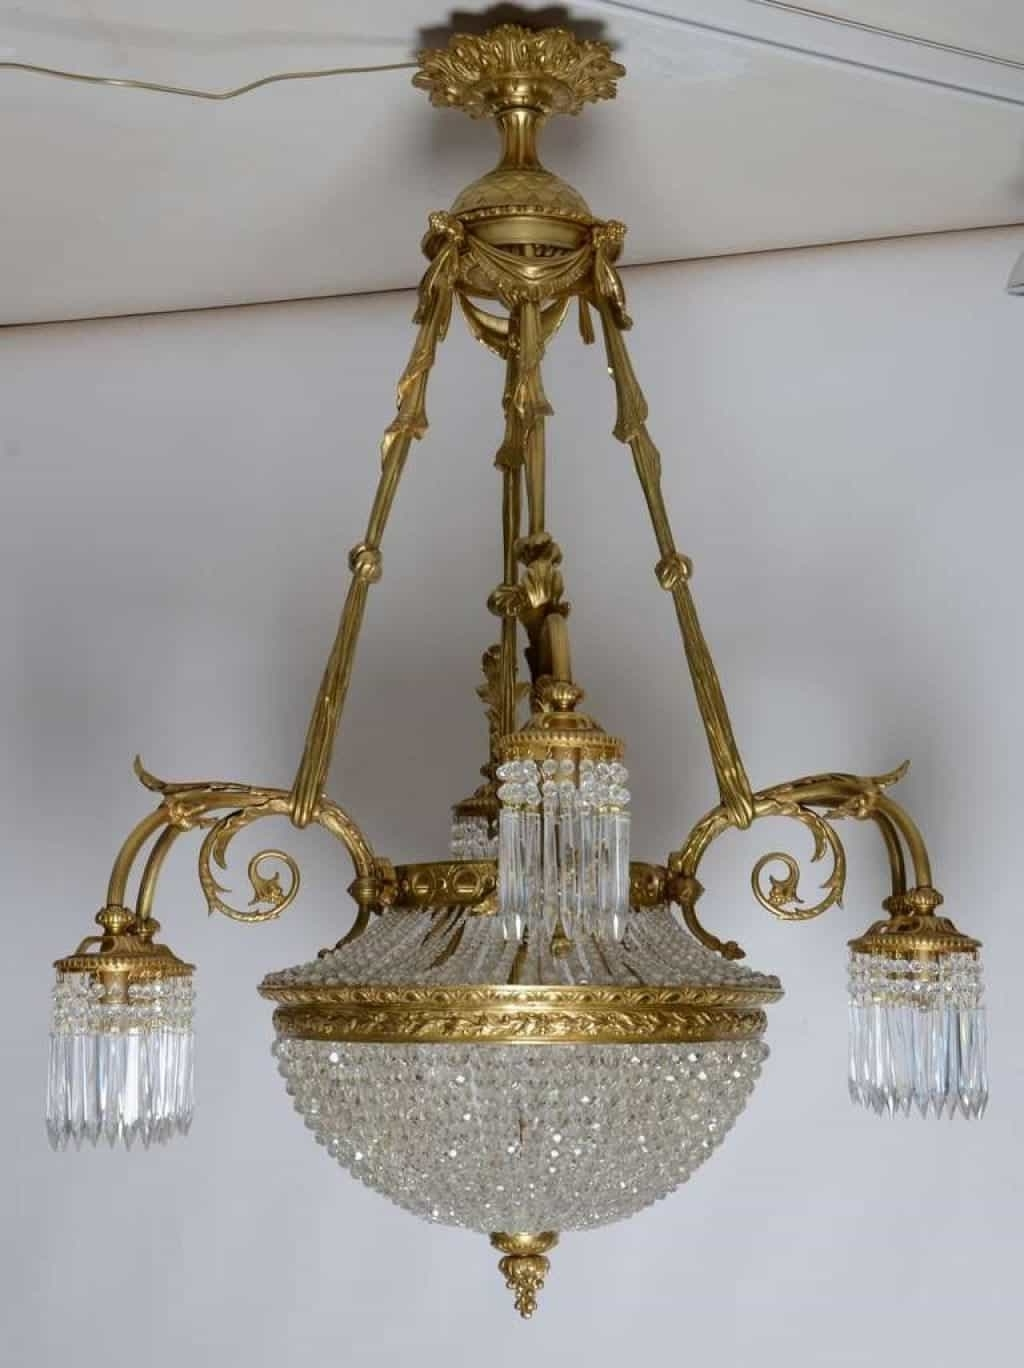 Xtend Pertaining To Well Known Antique French Chandeliers (Gallery 6 of 20)